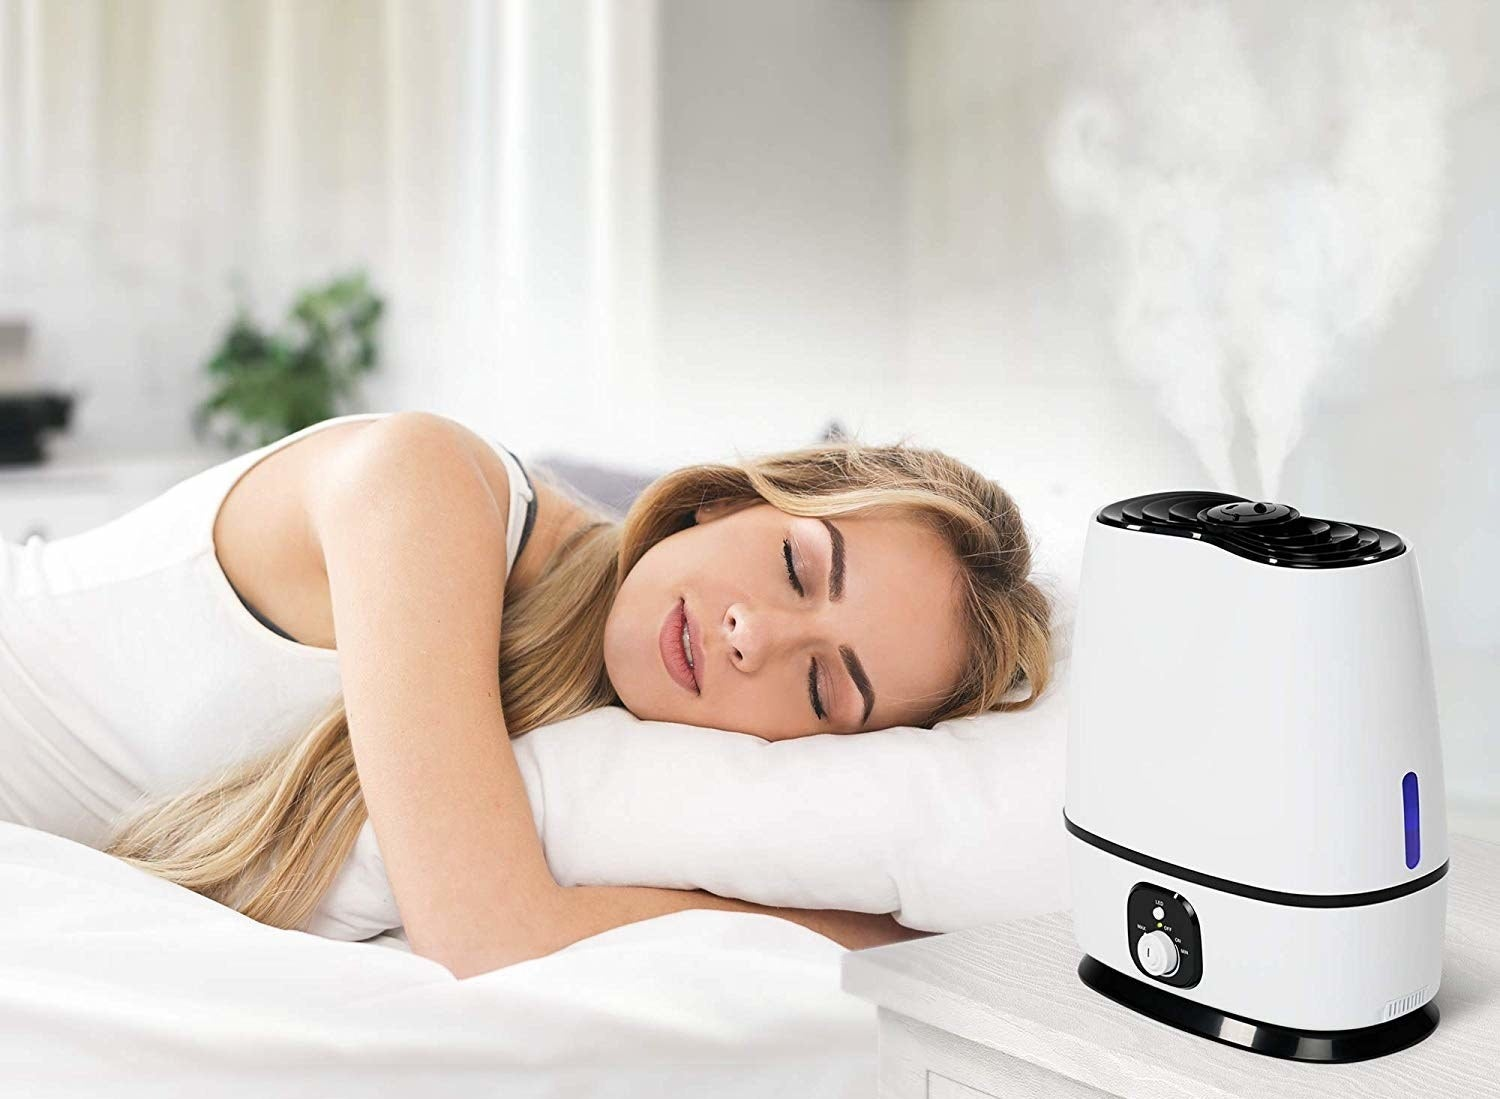 The ultra-sonic cool-mist humidifier